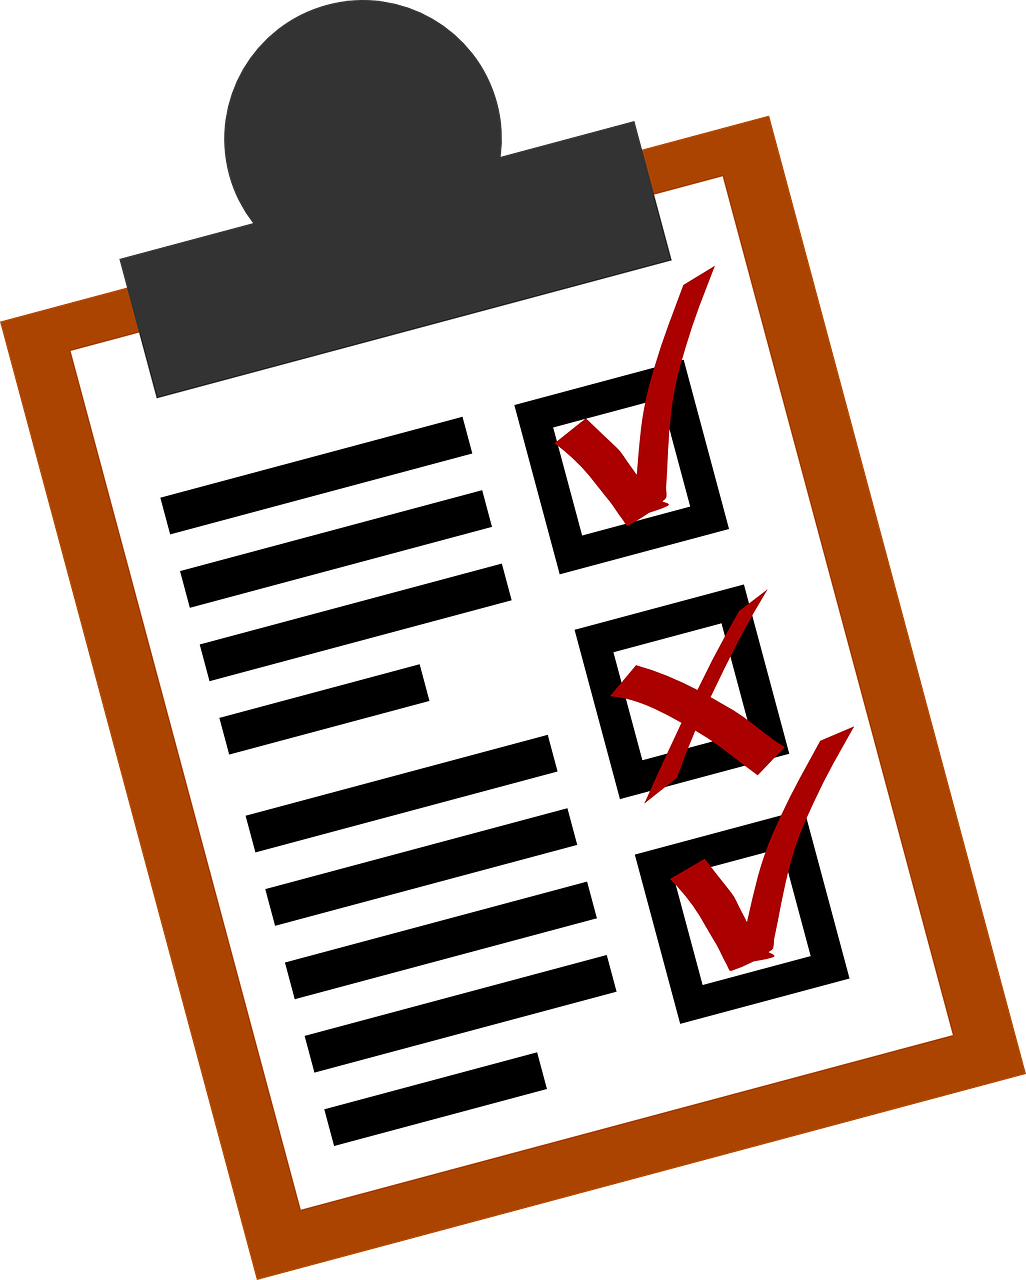 checklist-41335_1280.png